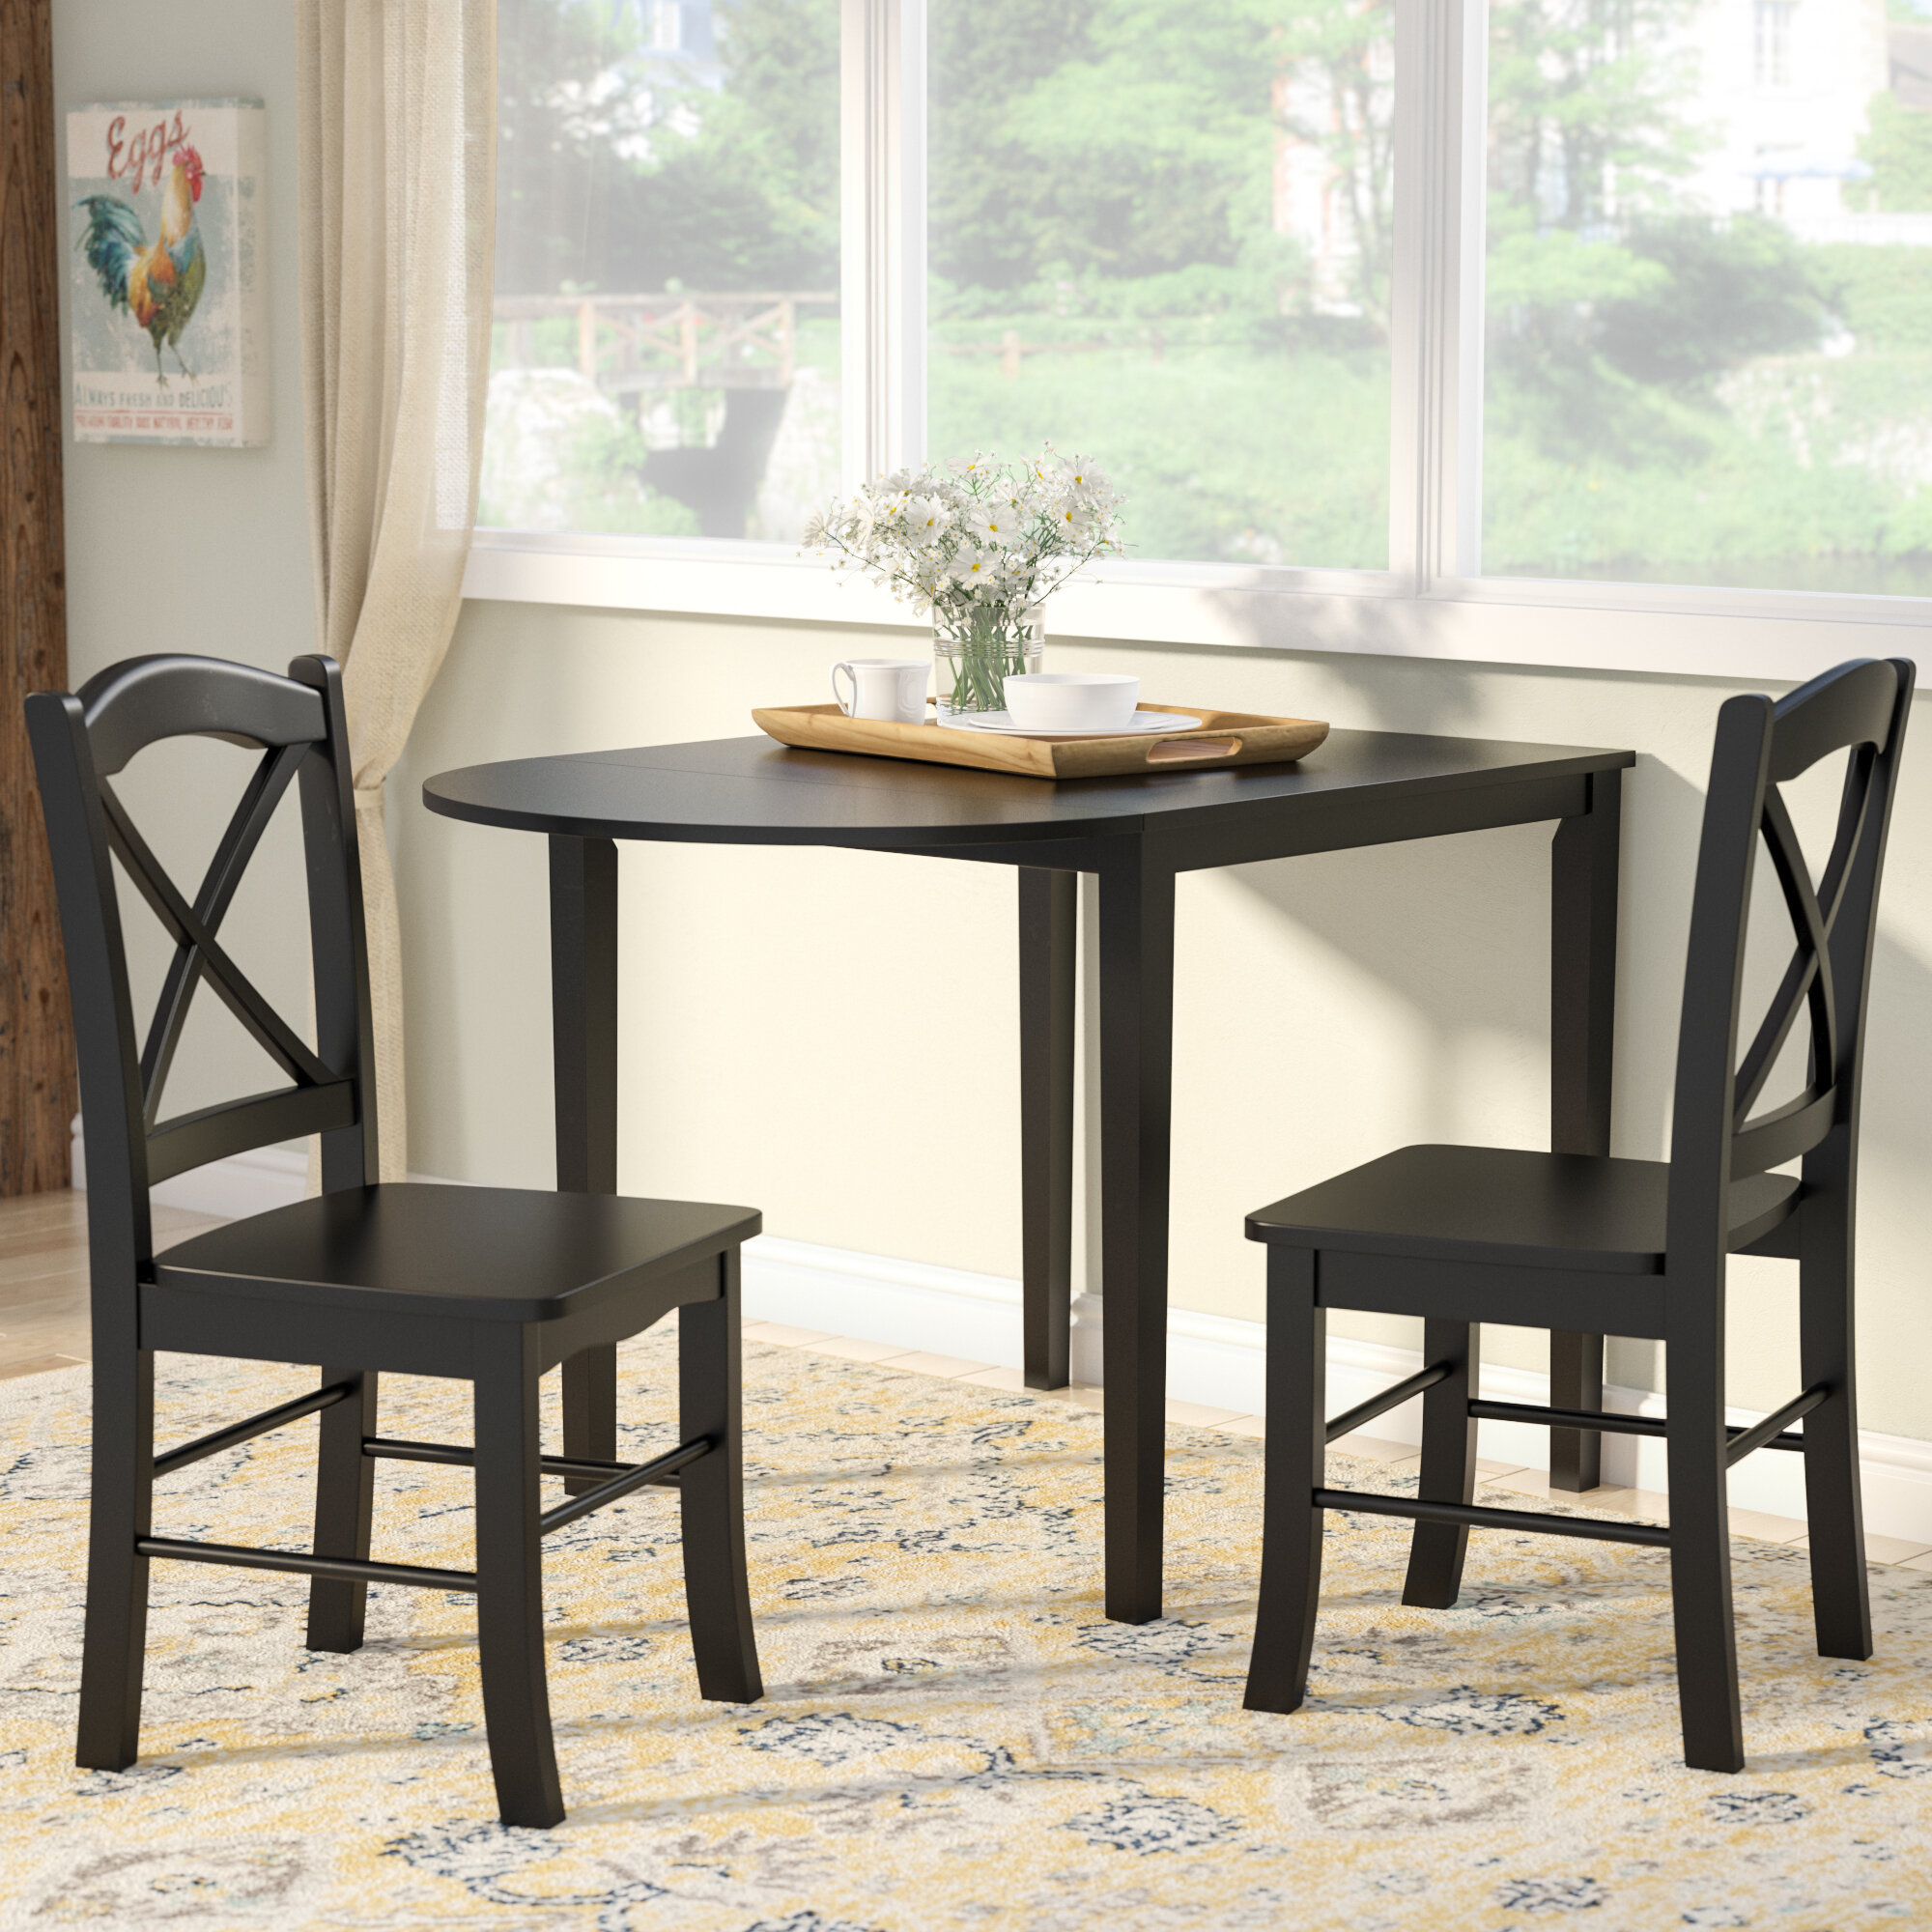 White Natural 3 pc Dining Table Set Chairs Kitchen Bistro Breakfast Dinette Pub